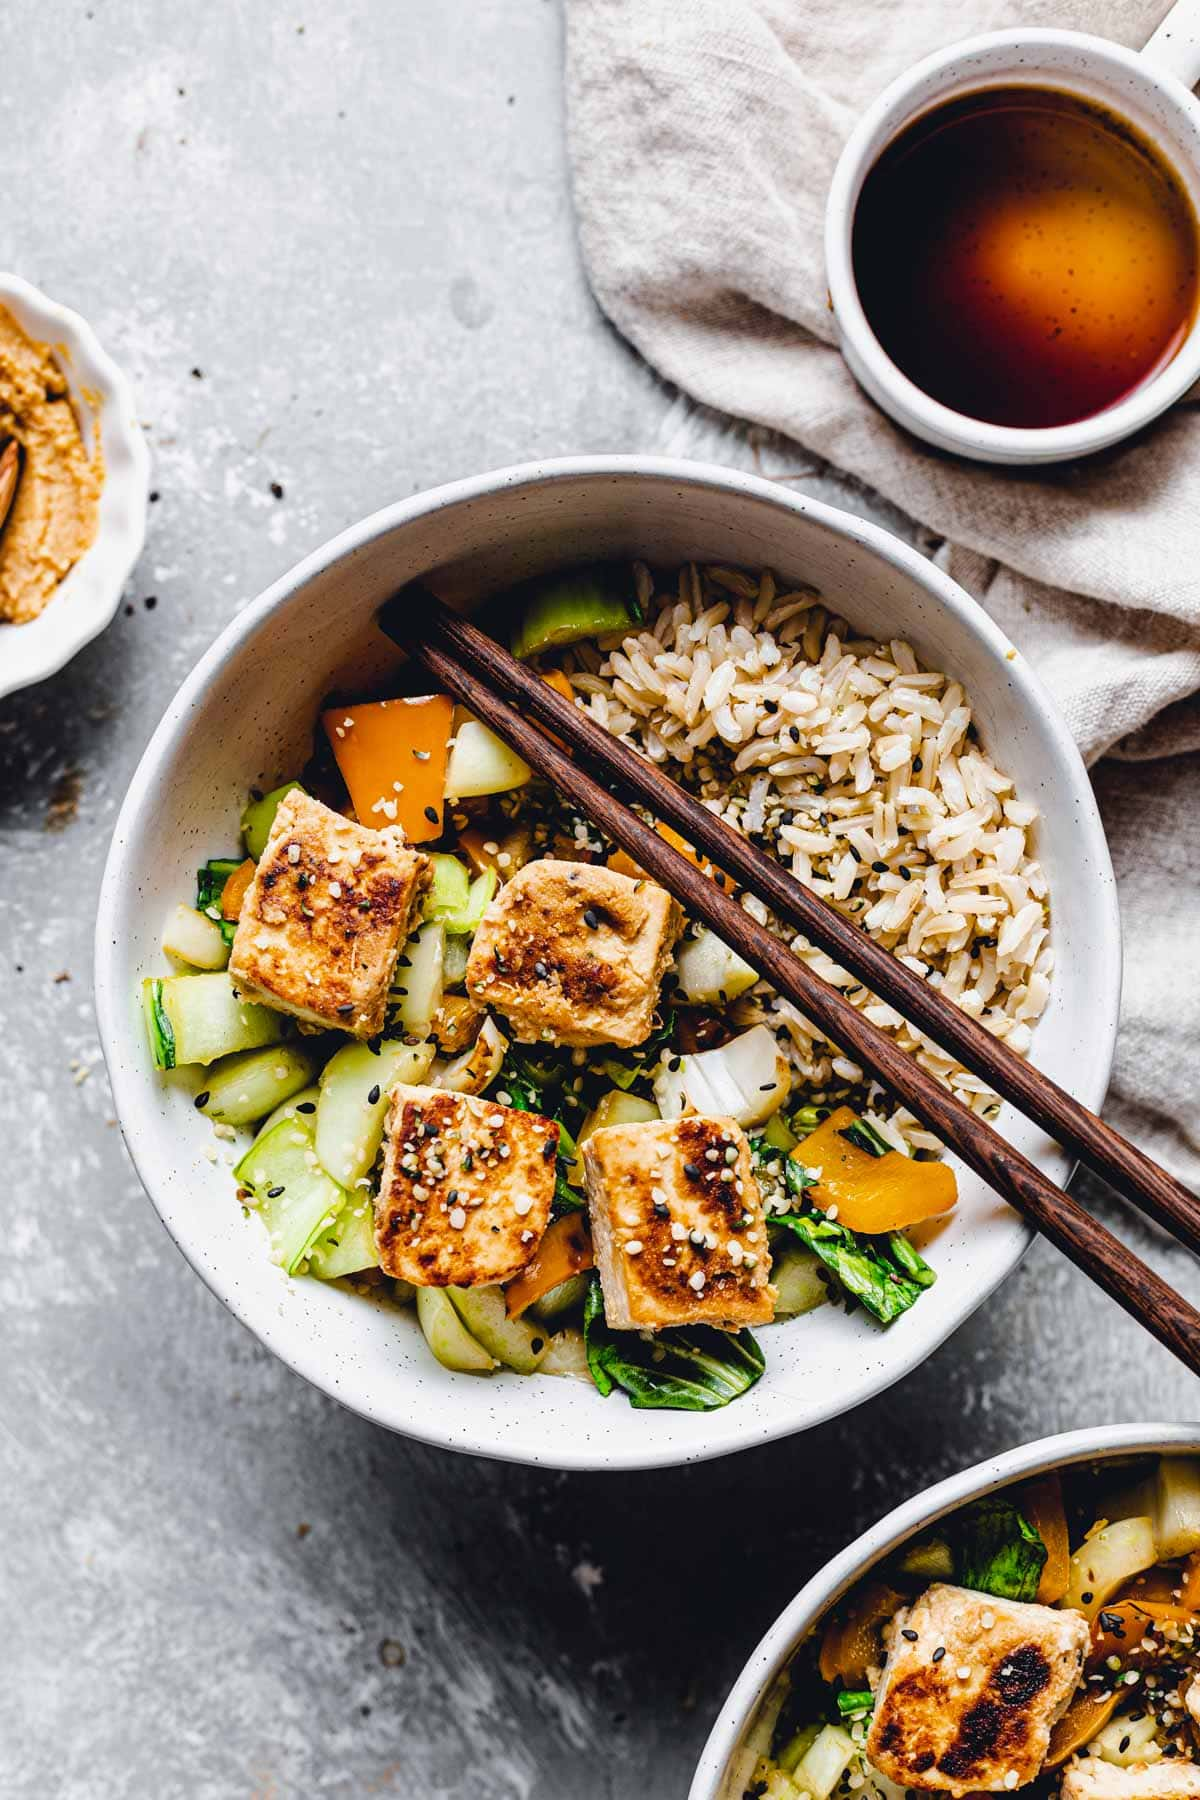 A bowl of rice, tofu and veggies with two wooden chopsticks placed in the middle.